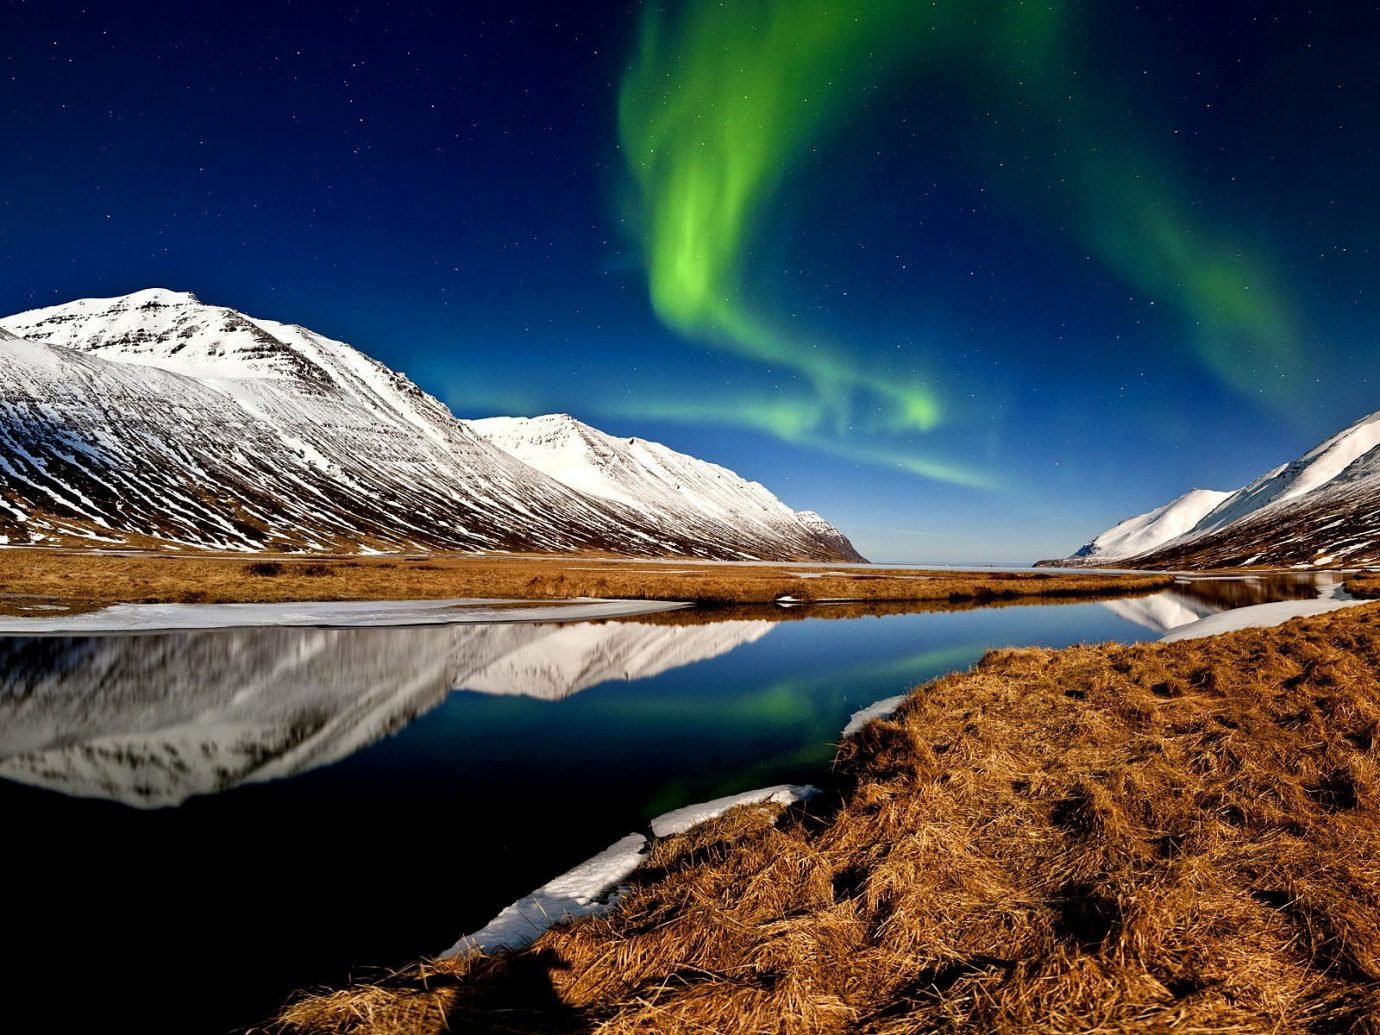 Hotels Iceland Travel Tips Trip Ideas outdoor Nature mountain geological phenomenon aurora landscape mountain range